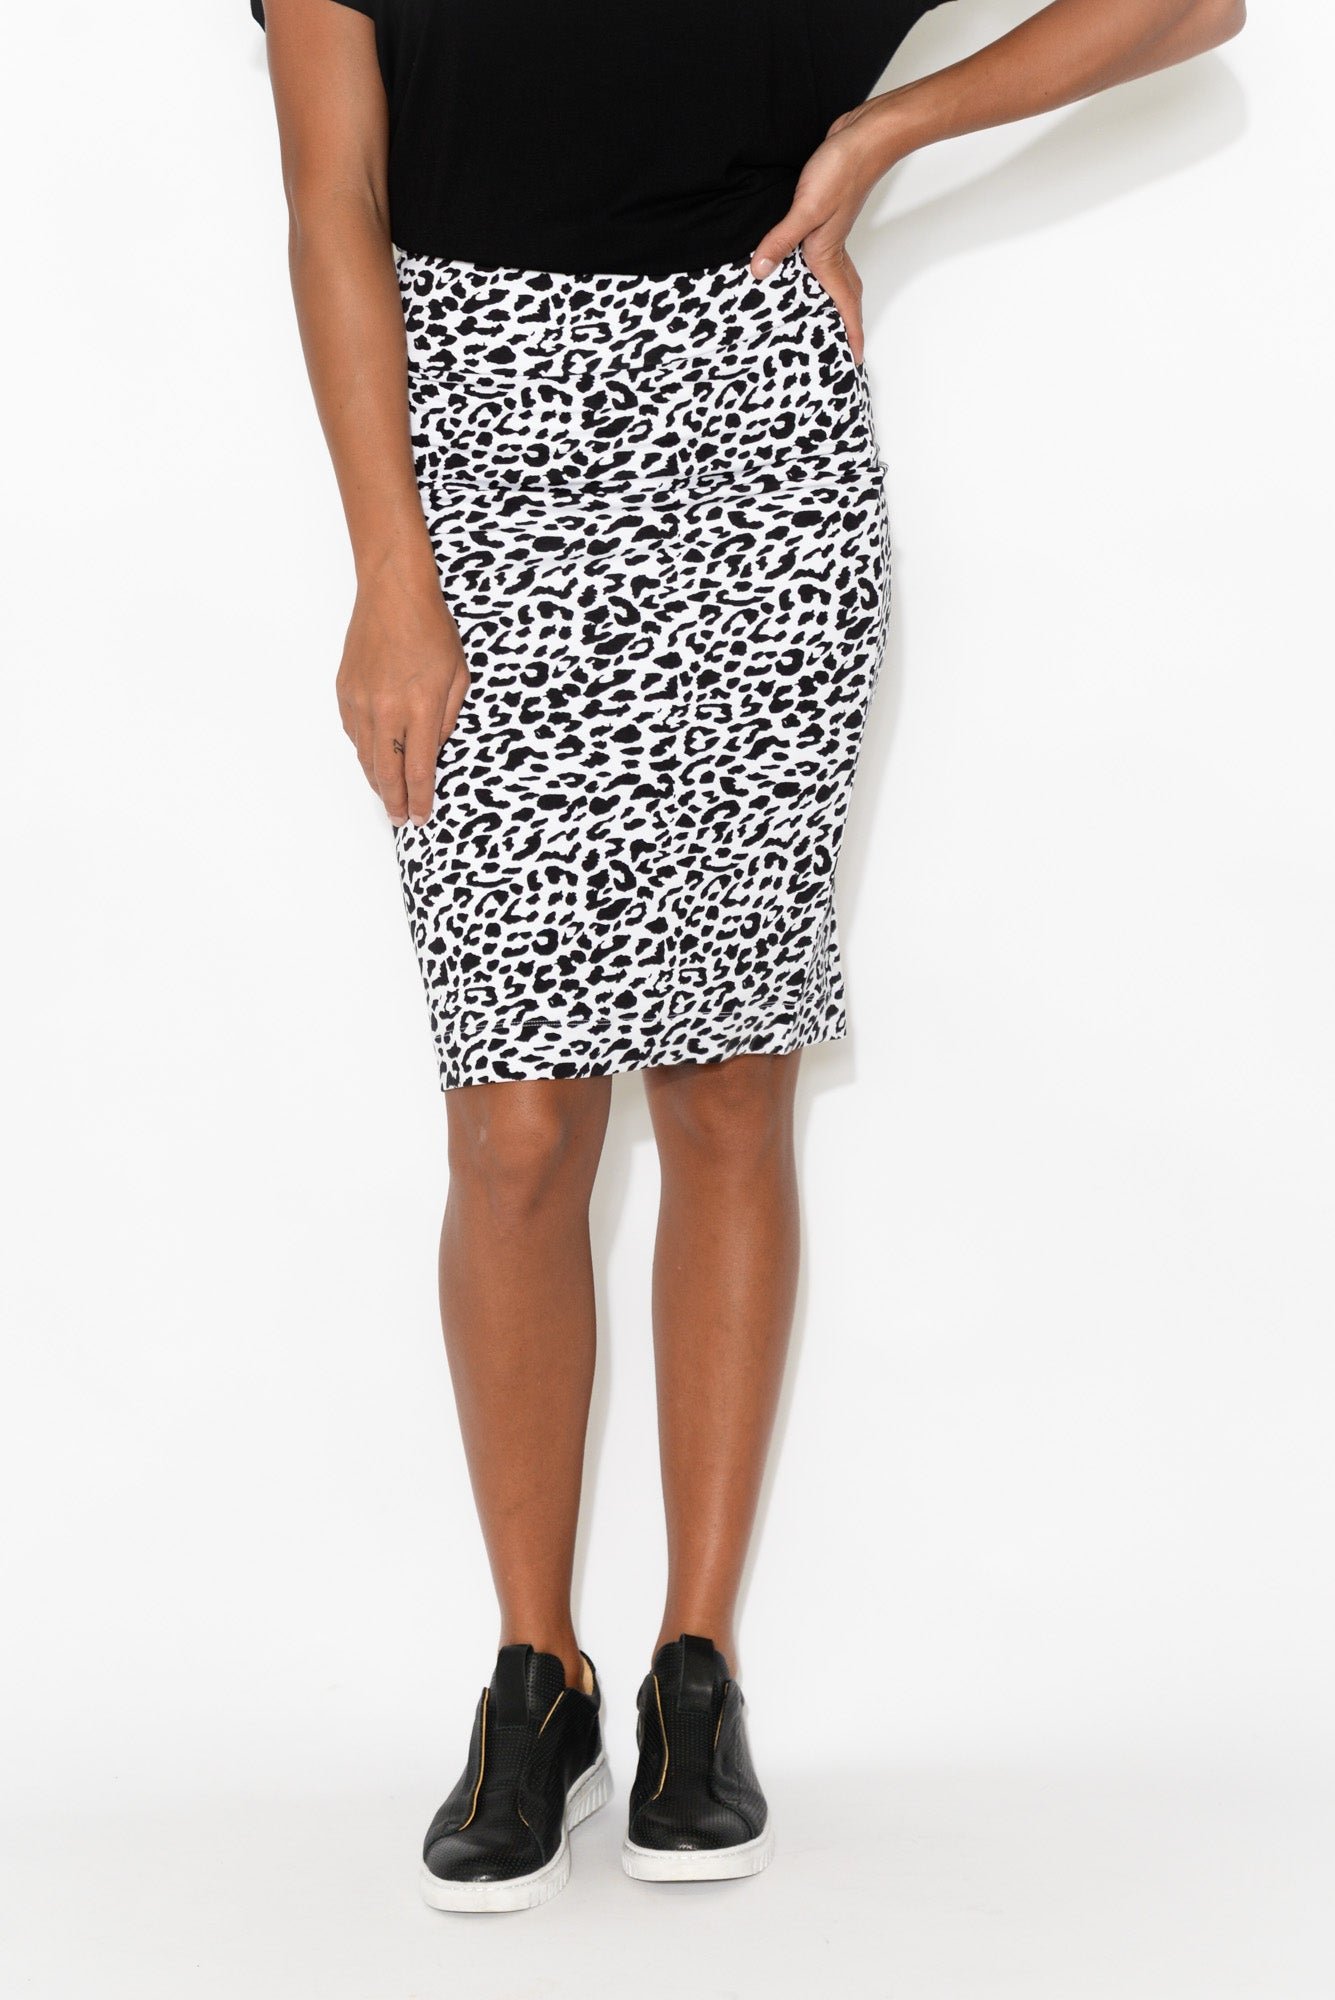 Whitney Black Leopard Bamboo Tube Skirt